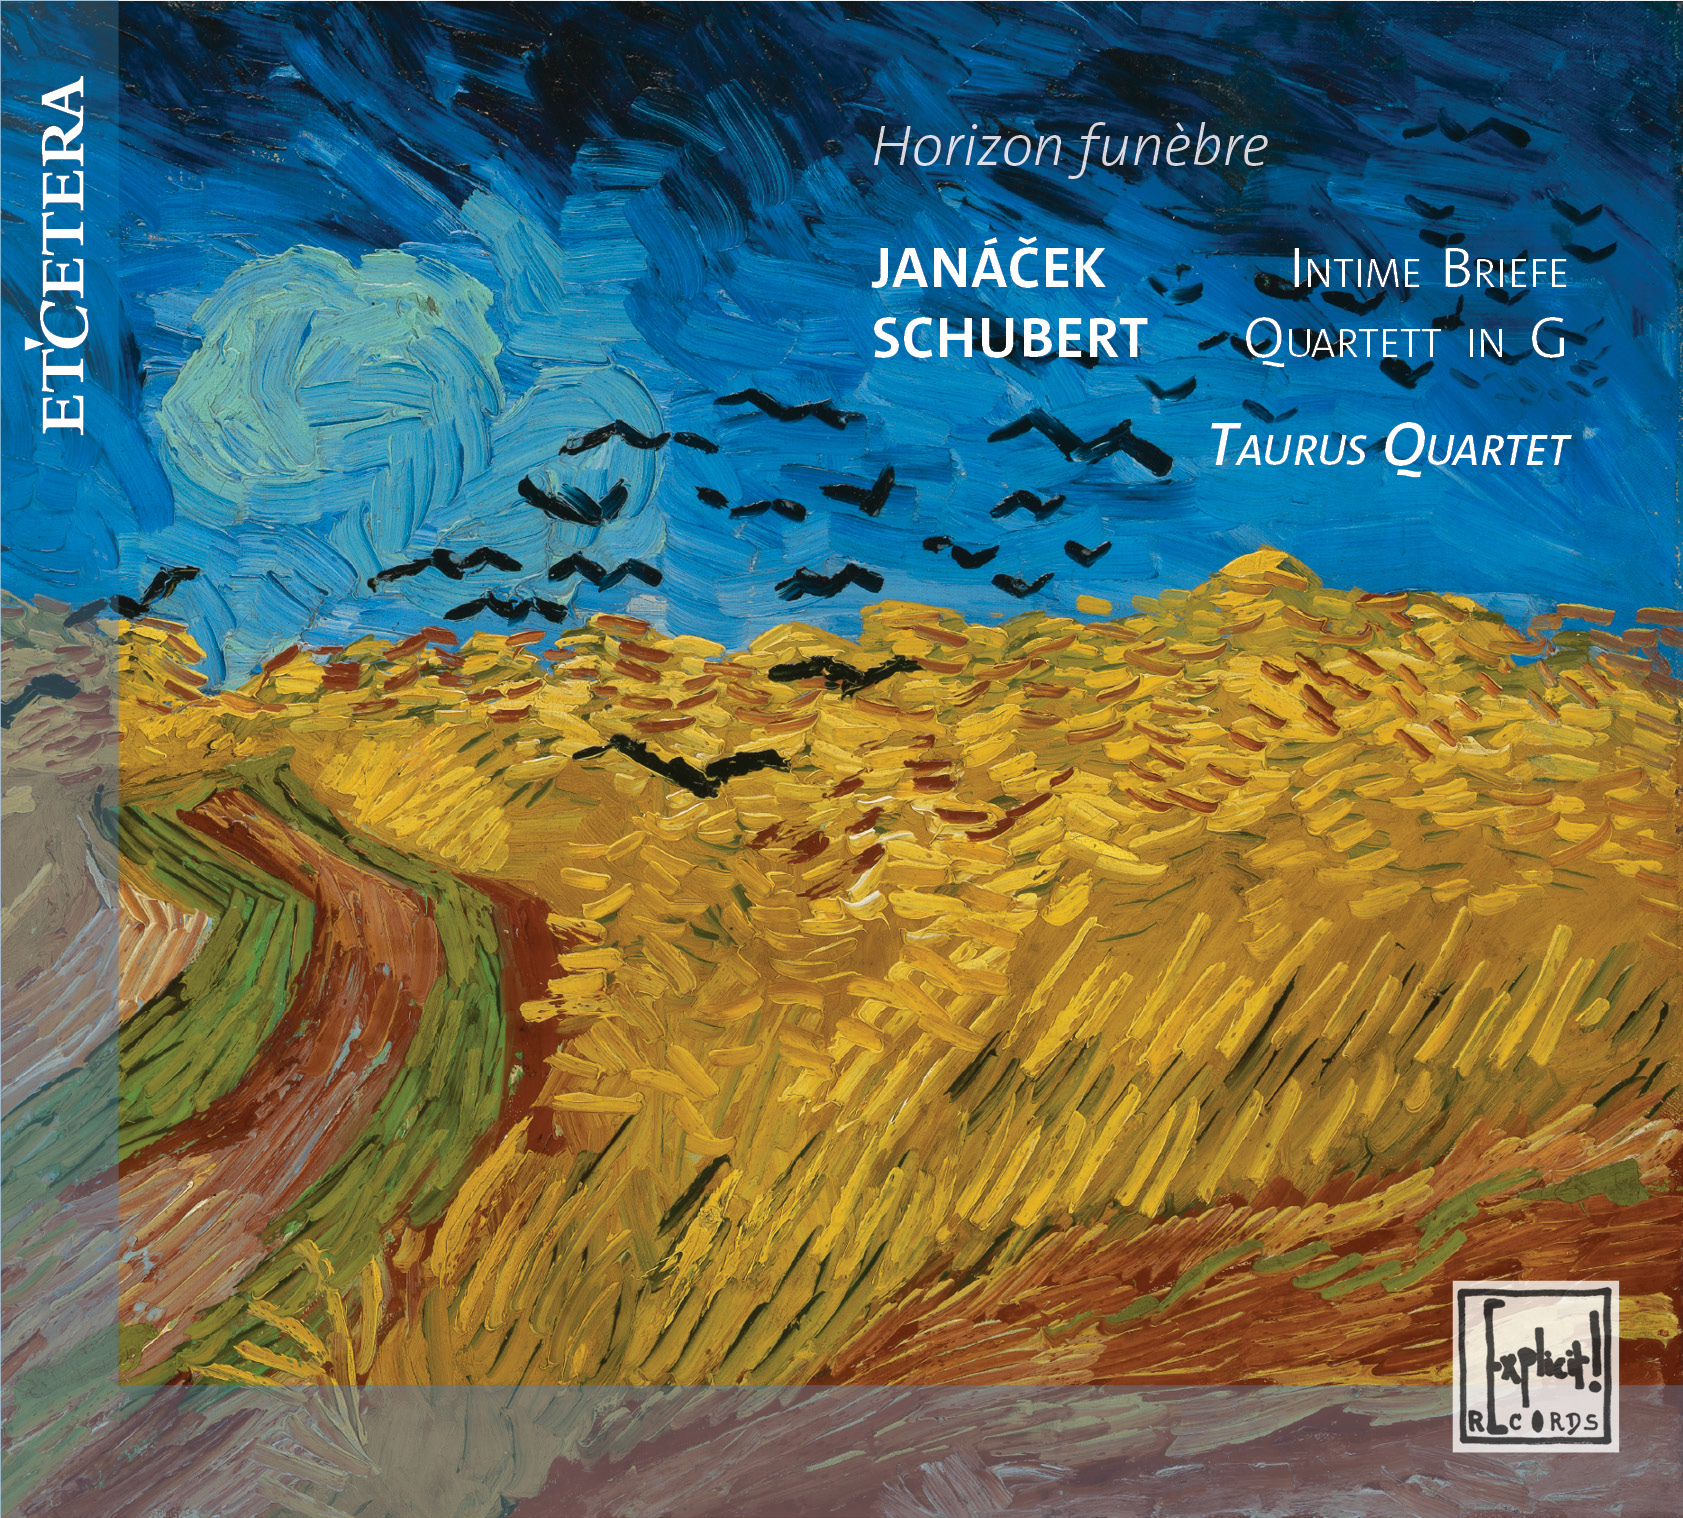 1st Cd Taurus Quartet